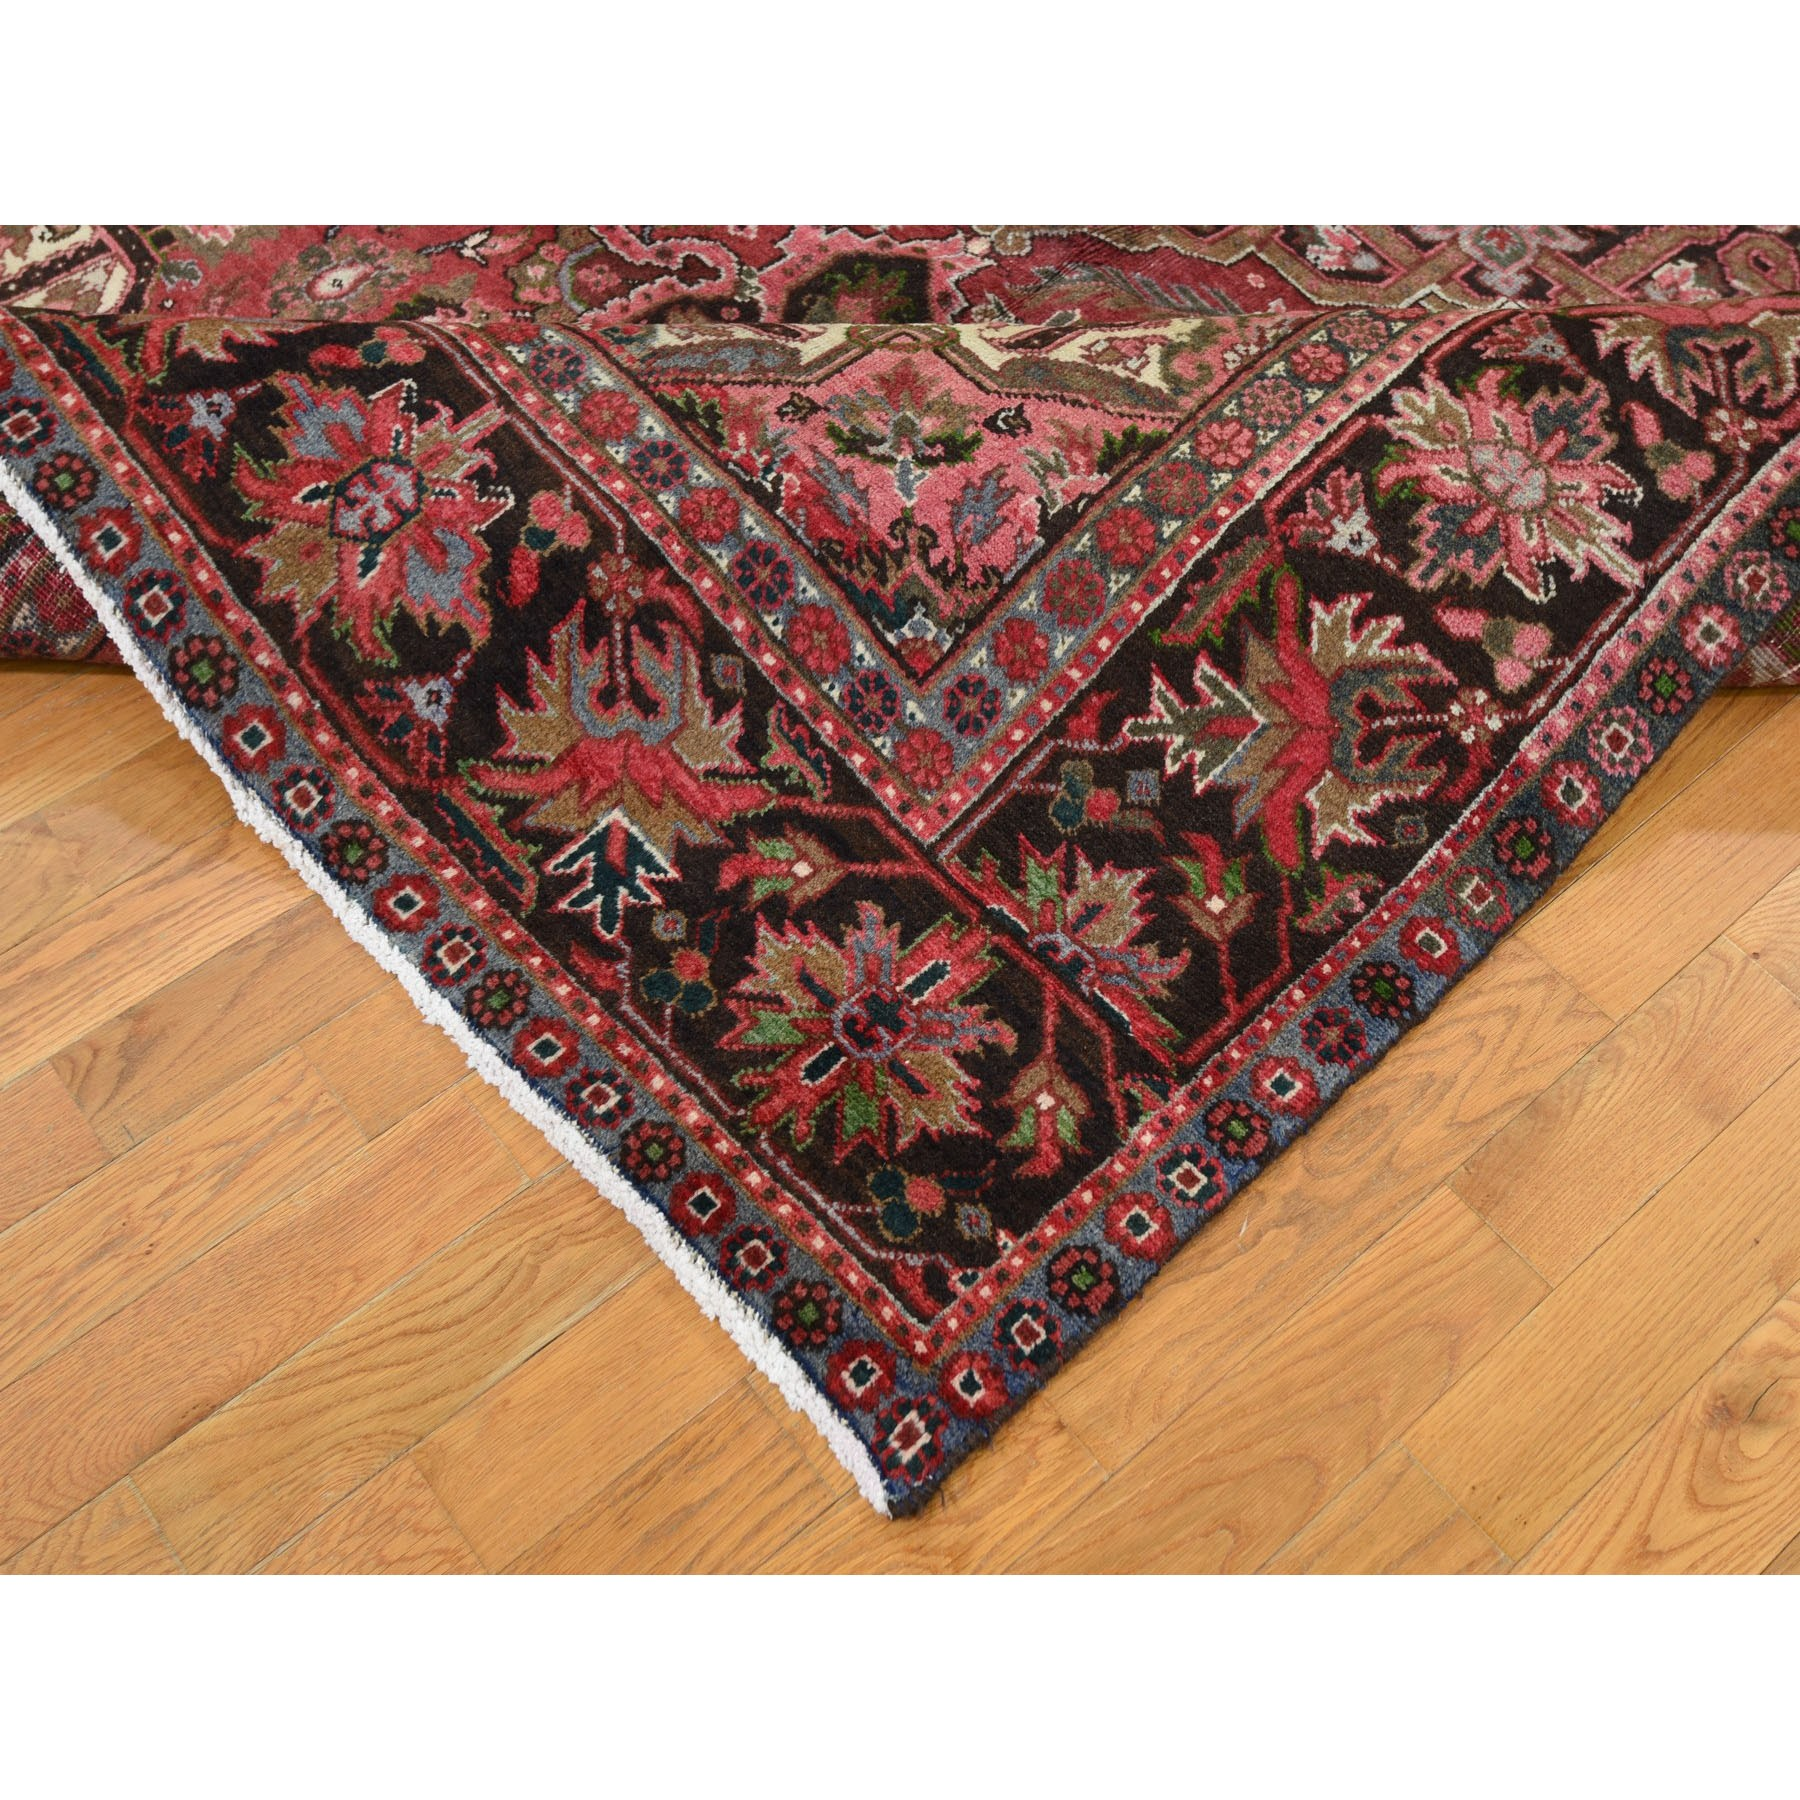 "7'7""x11' Red Semi Antique Persian Heriz Geometric Design Thick and Plush Hand Knotted Oriental Rug"